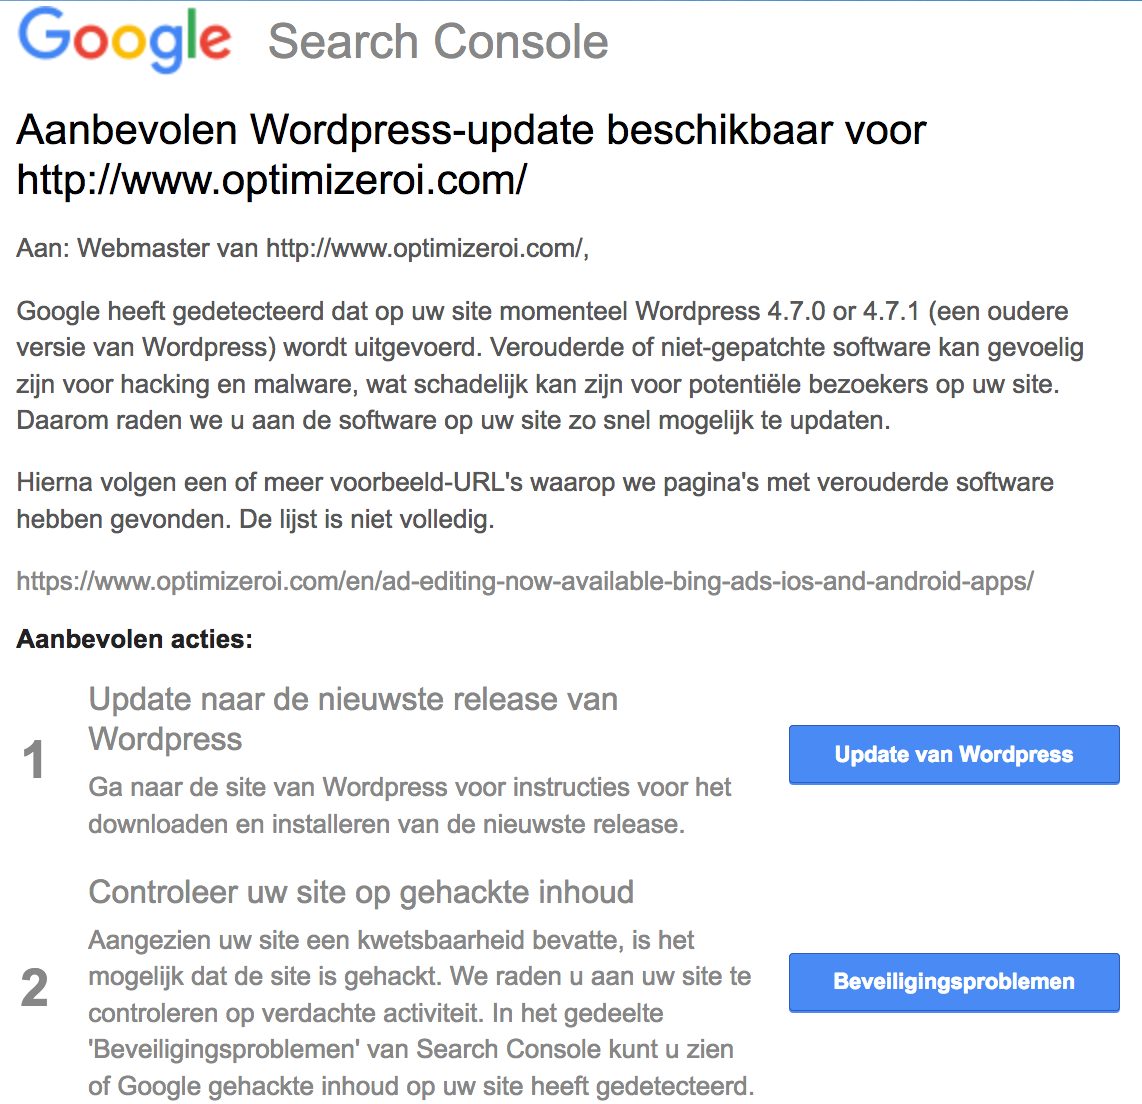 google search console worpress update - Google Search Console melding als Wordpress niet up to date is